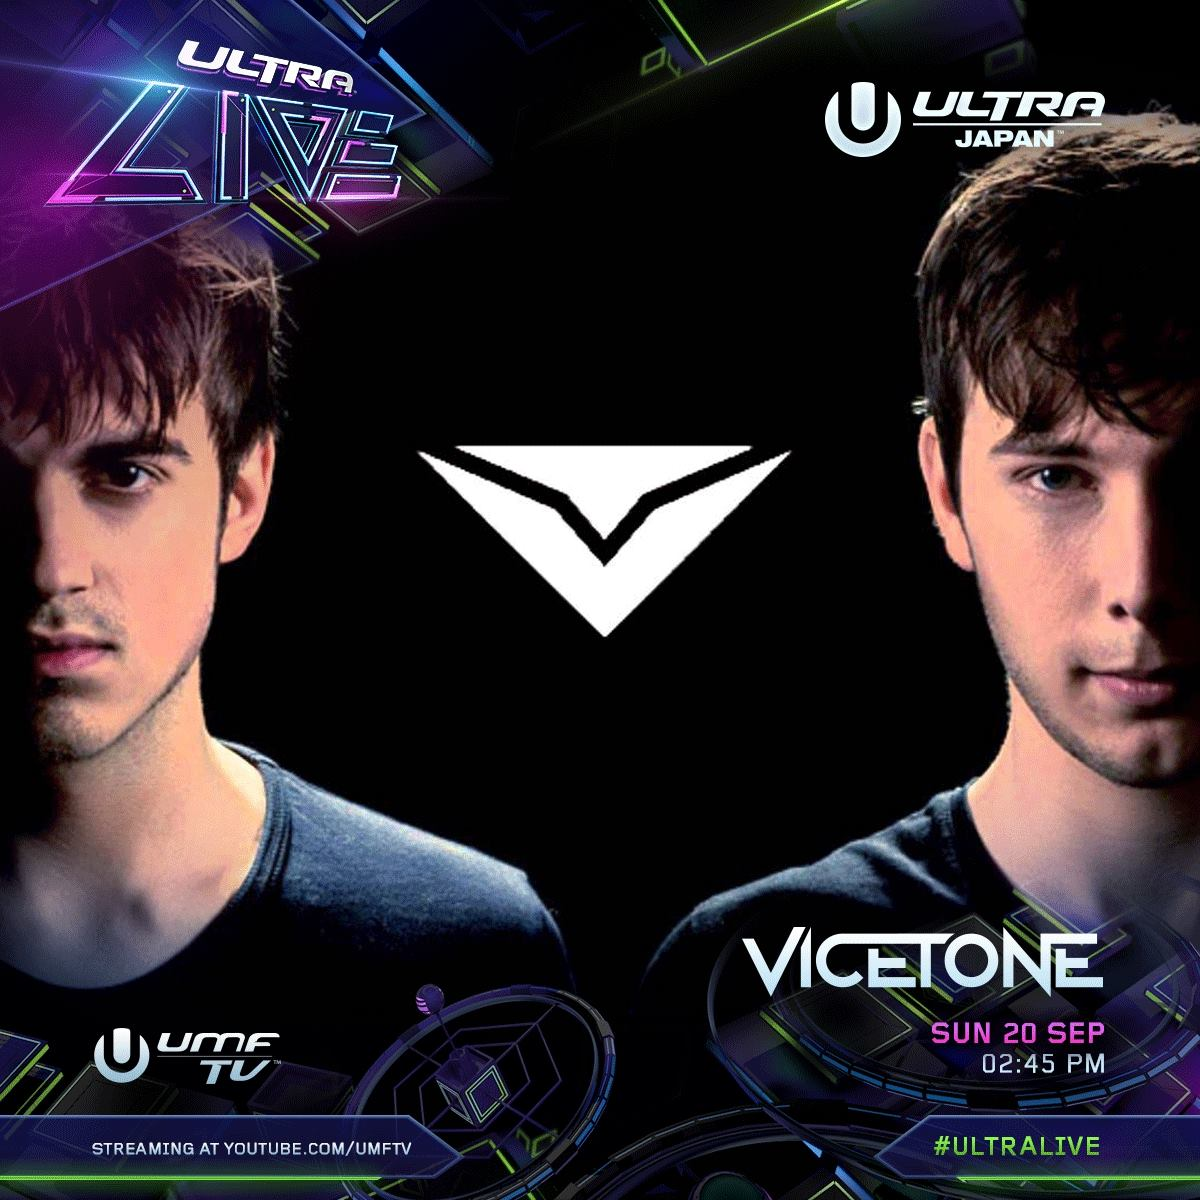 ULTRA JAPAN 2015 Vicetone